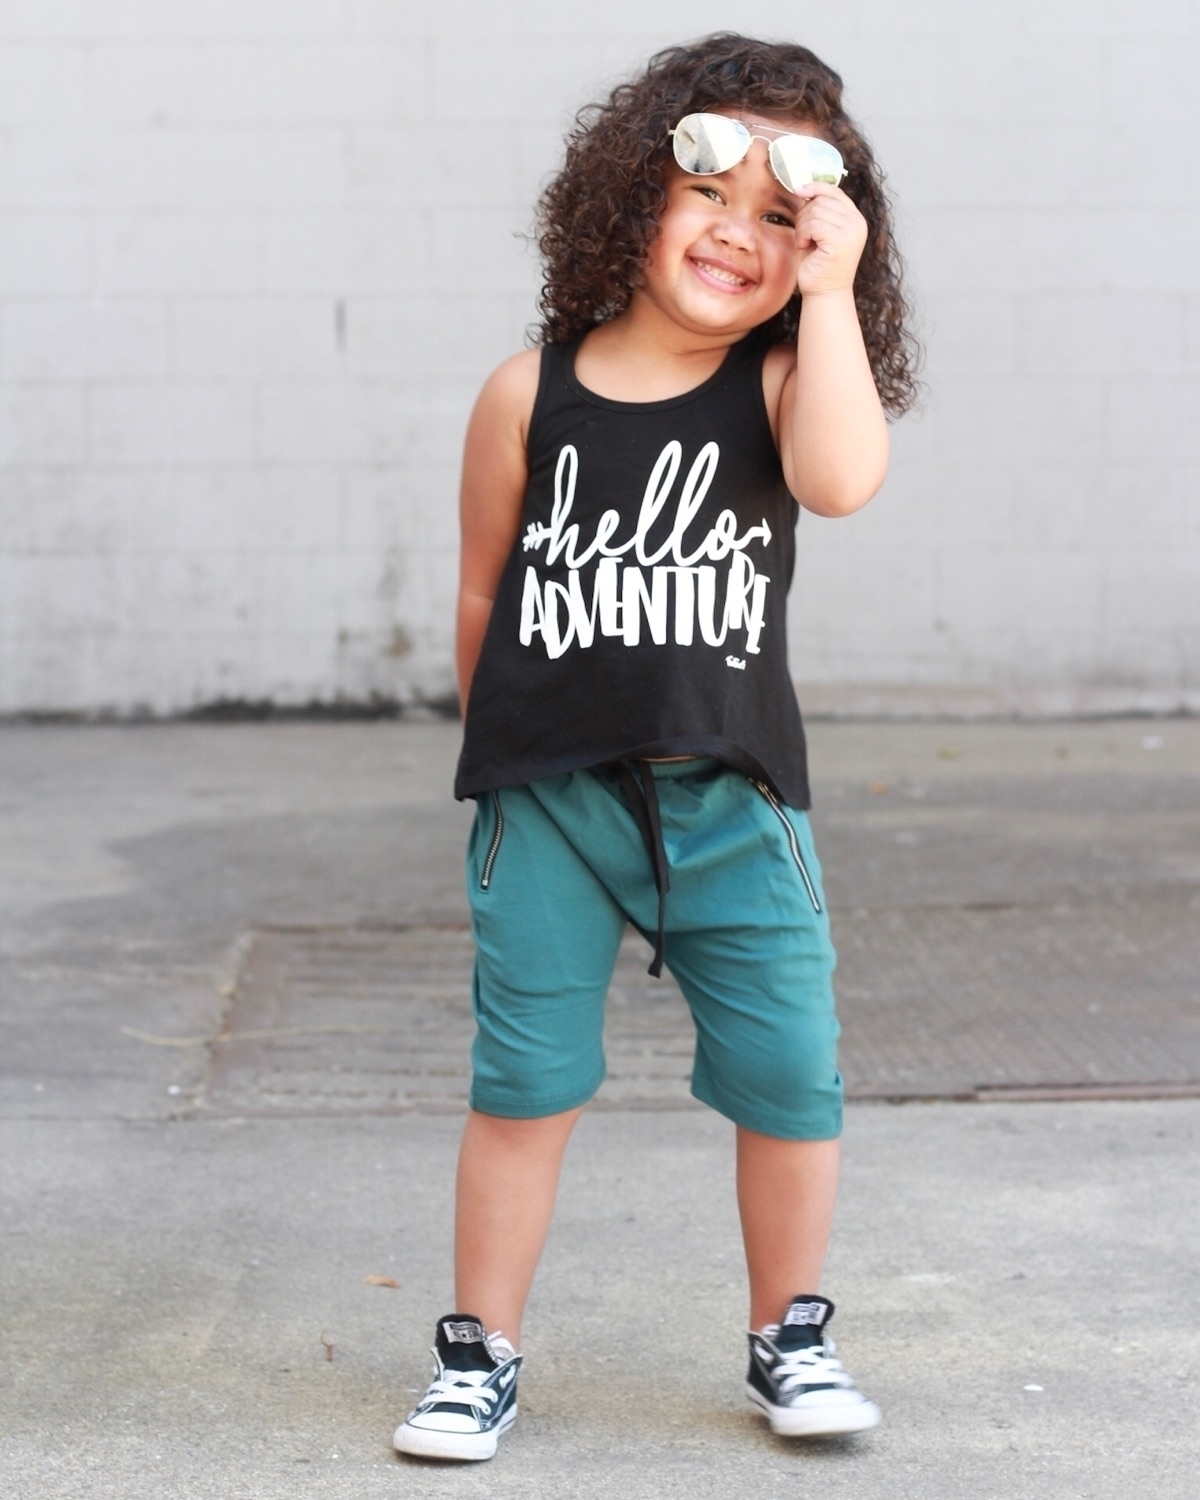 Feeling adventurous?! teal Zip  - 9twentyfivekids | ello